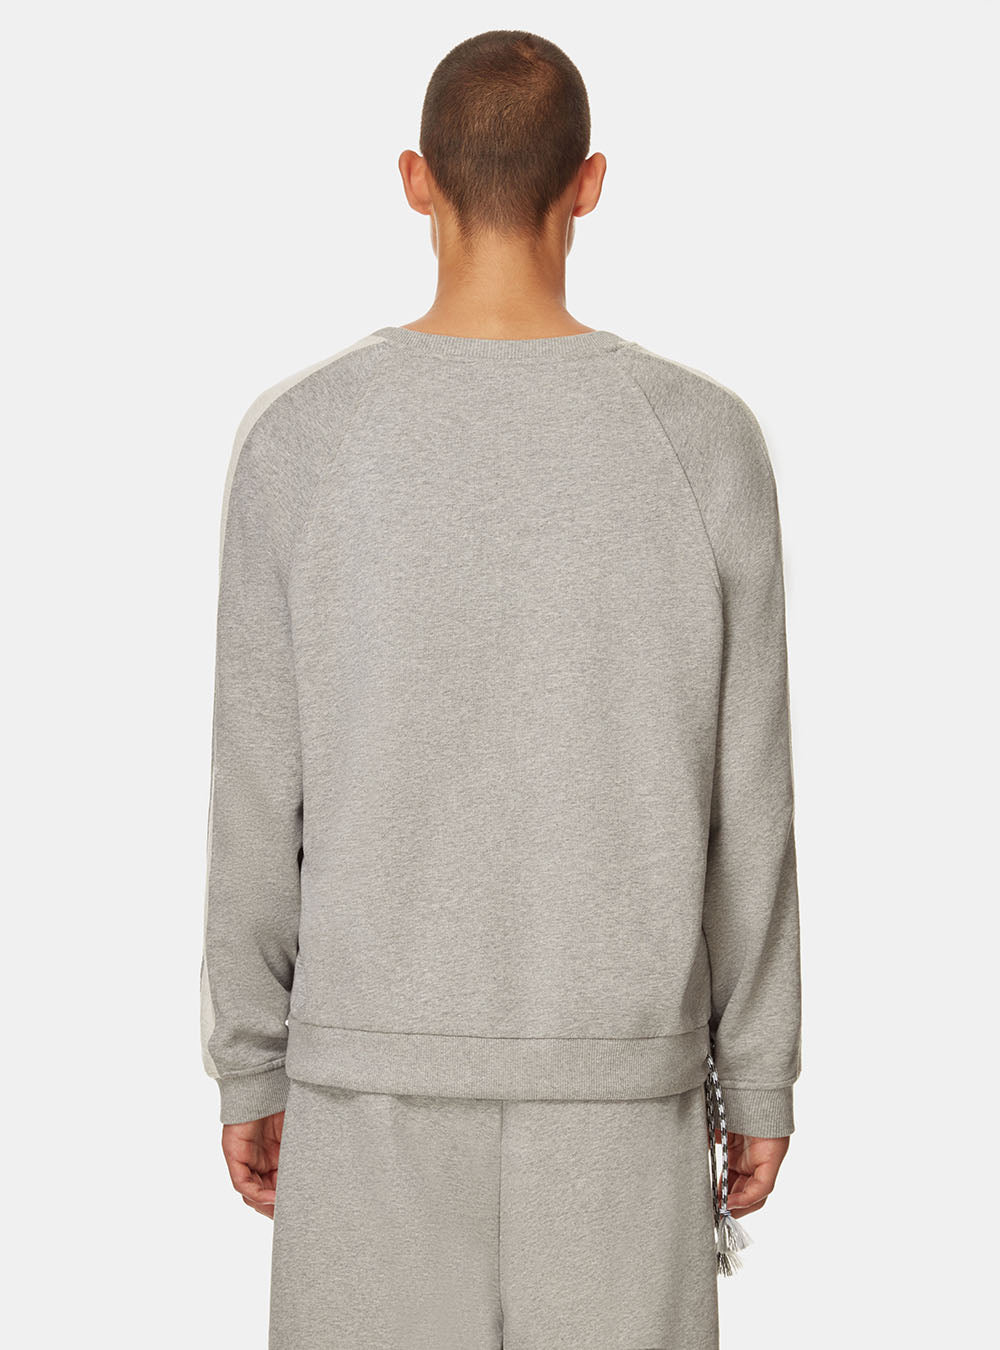 HARROUDA OVERSIZED SWEATSHIRT